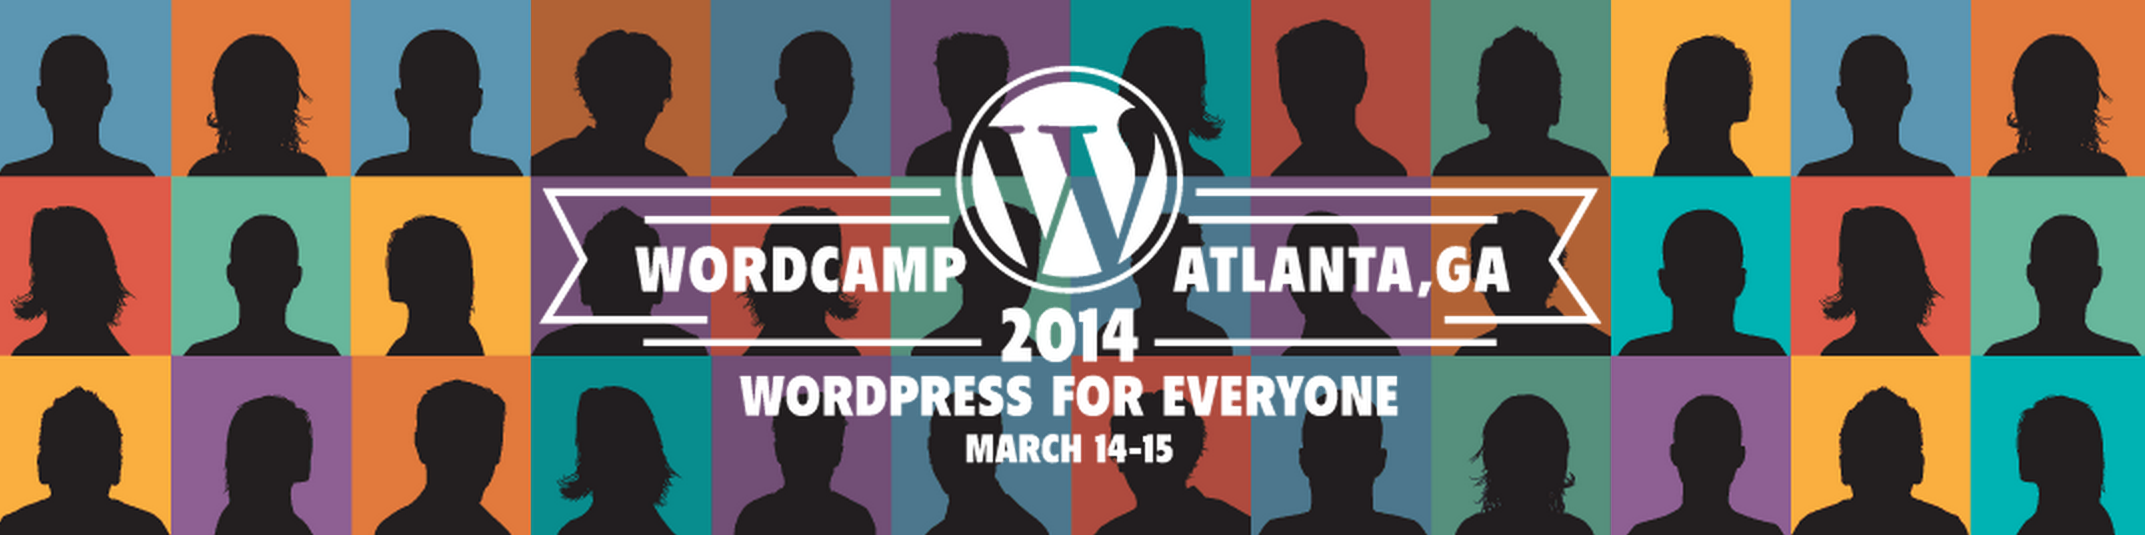 Wordcamp Atlanta 2014 Tickets on Sale!